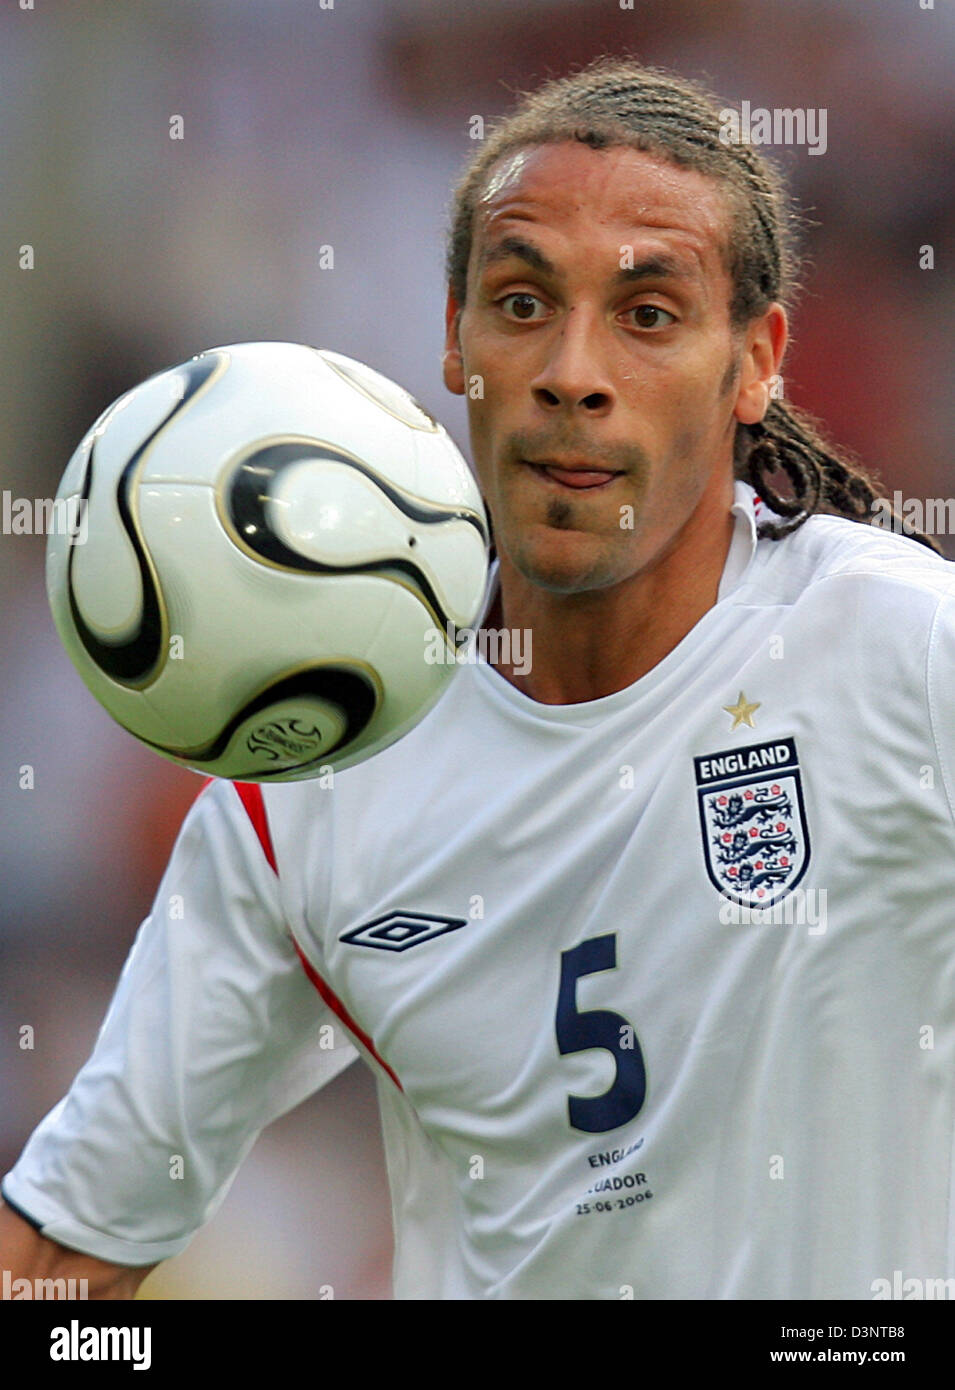 England national soccer player Rio Ferdinand from Manchester